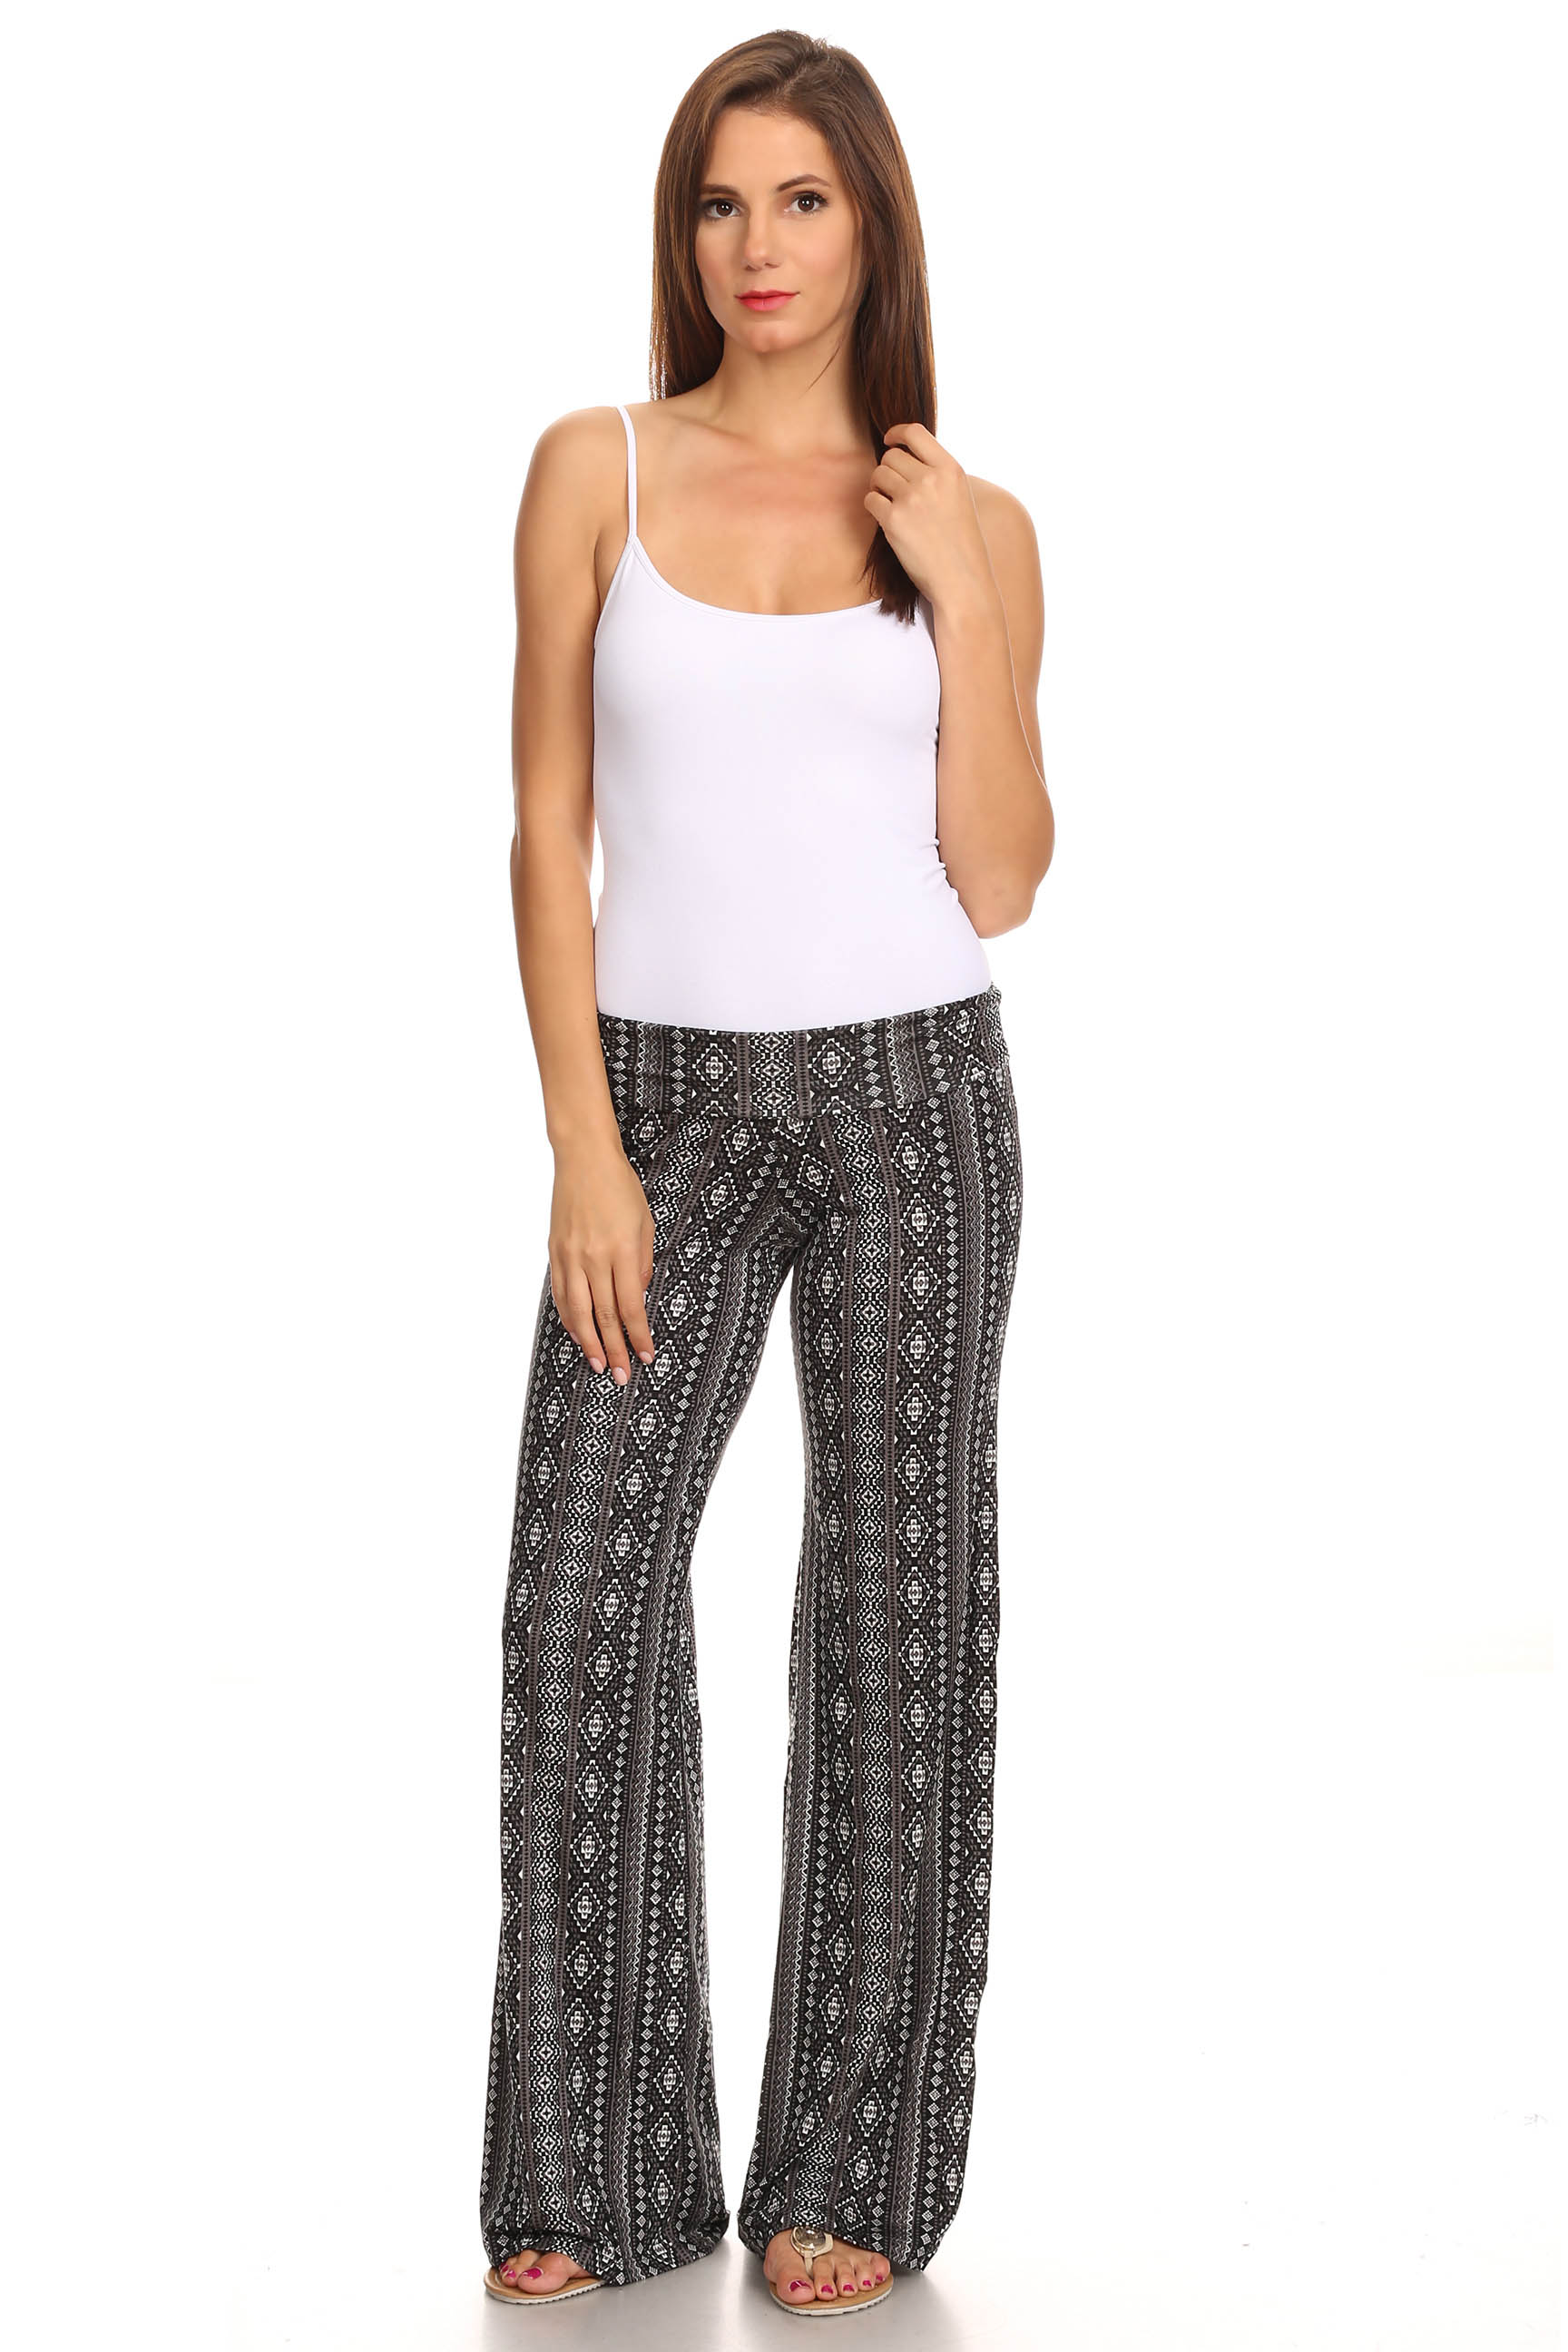 Simple Here Are The Styles Of Cotton Pants For Women You Can Choose From Printed  Printed Grey Cotton Palazzo Pants Image SourceJayorecom These Roomy Printed Palazzos Will Keep You Will Keep